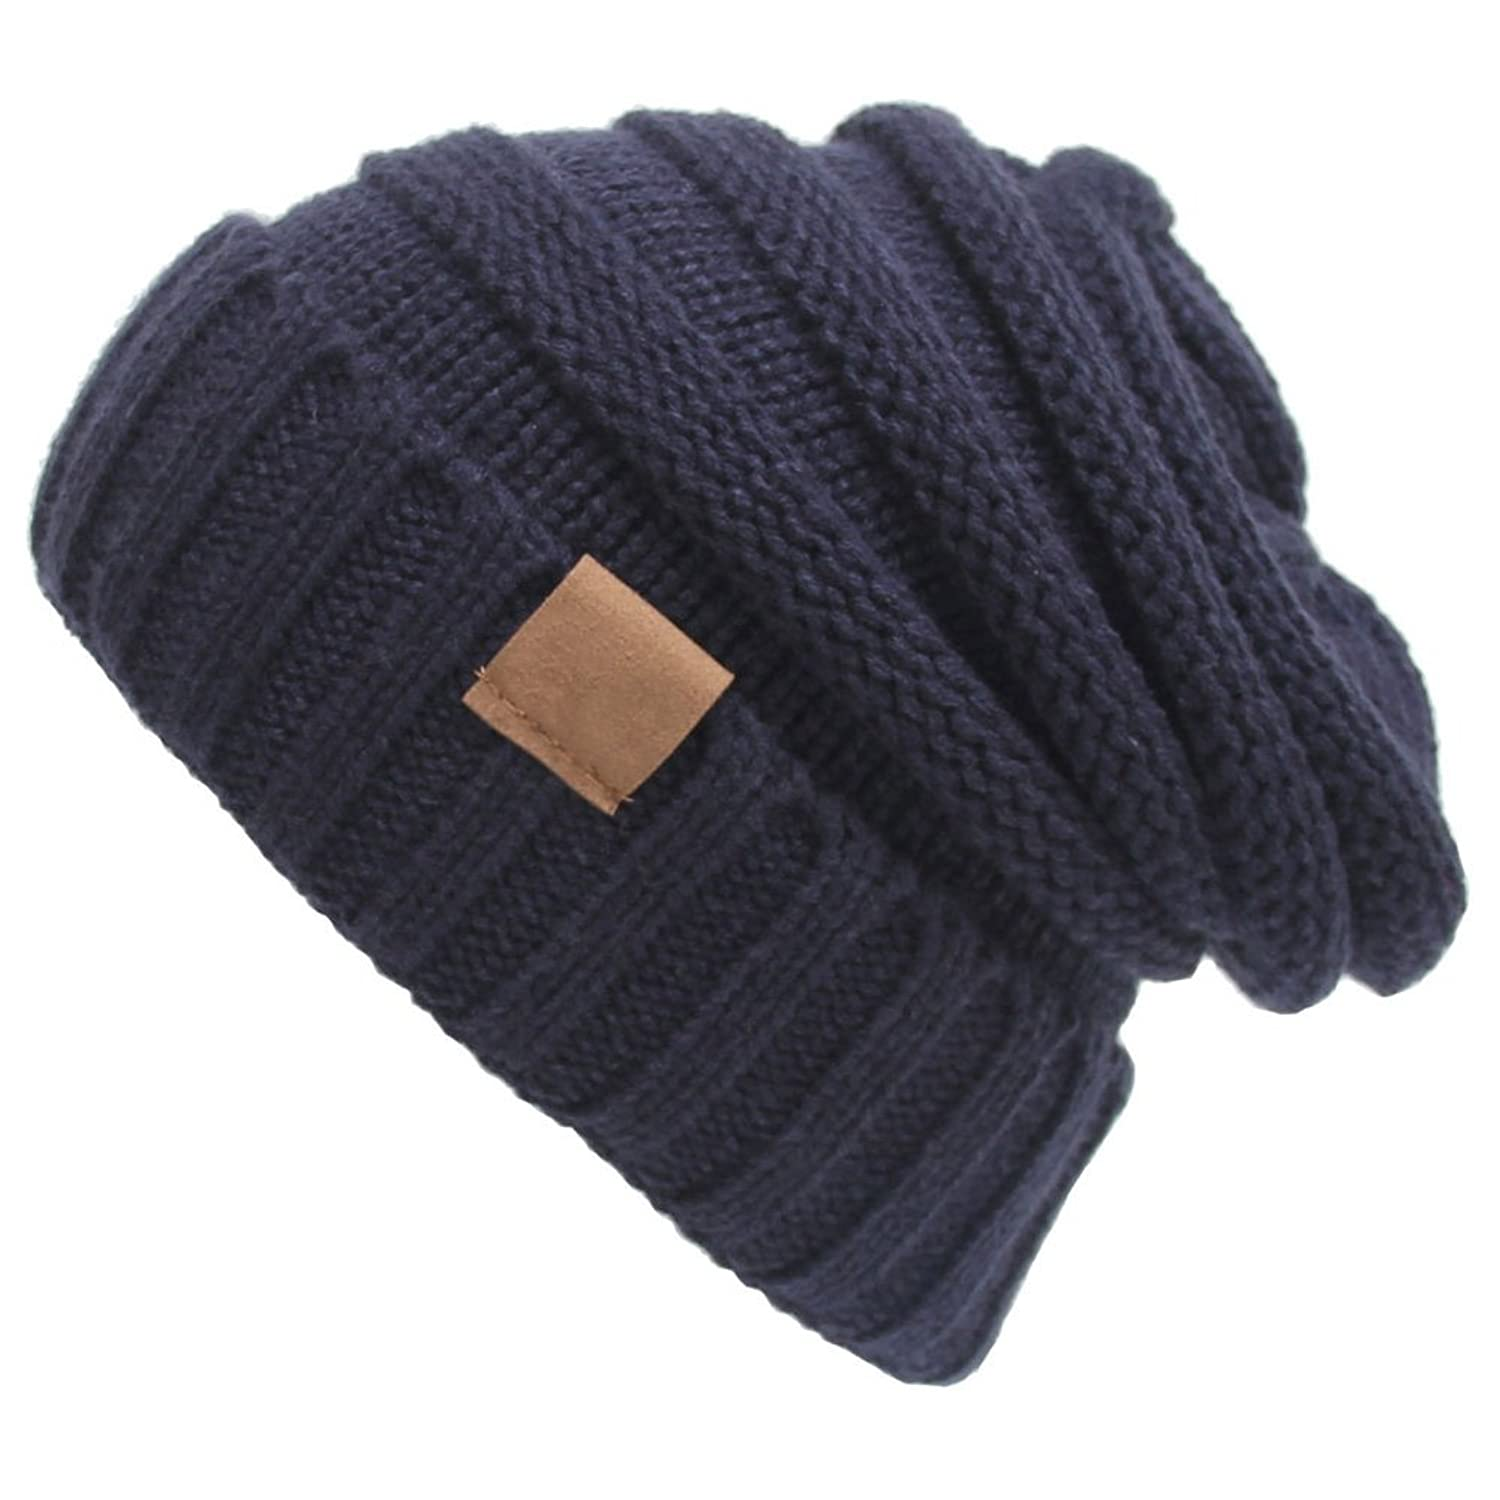 Funbase Womens Knit Slouchy Beanie Oversized Thick Cap Unisex Hat